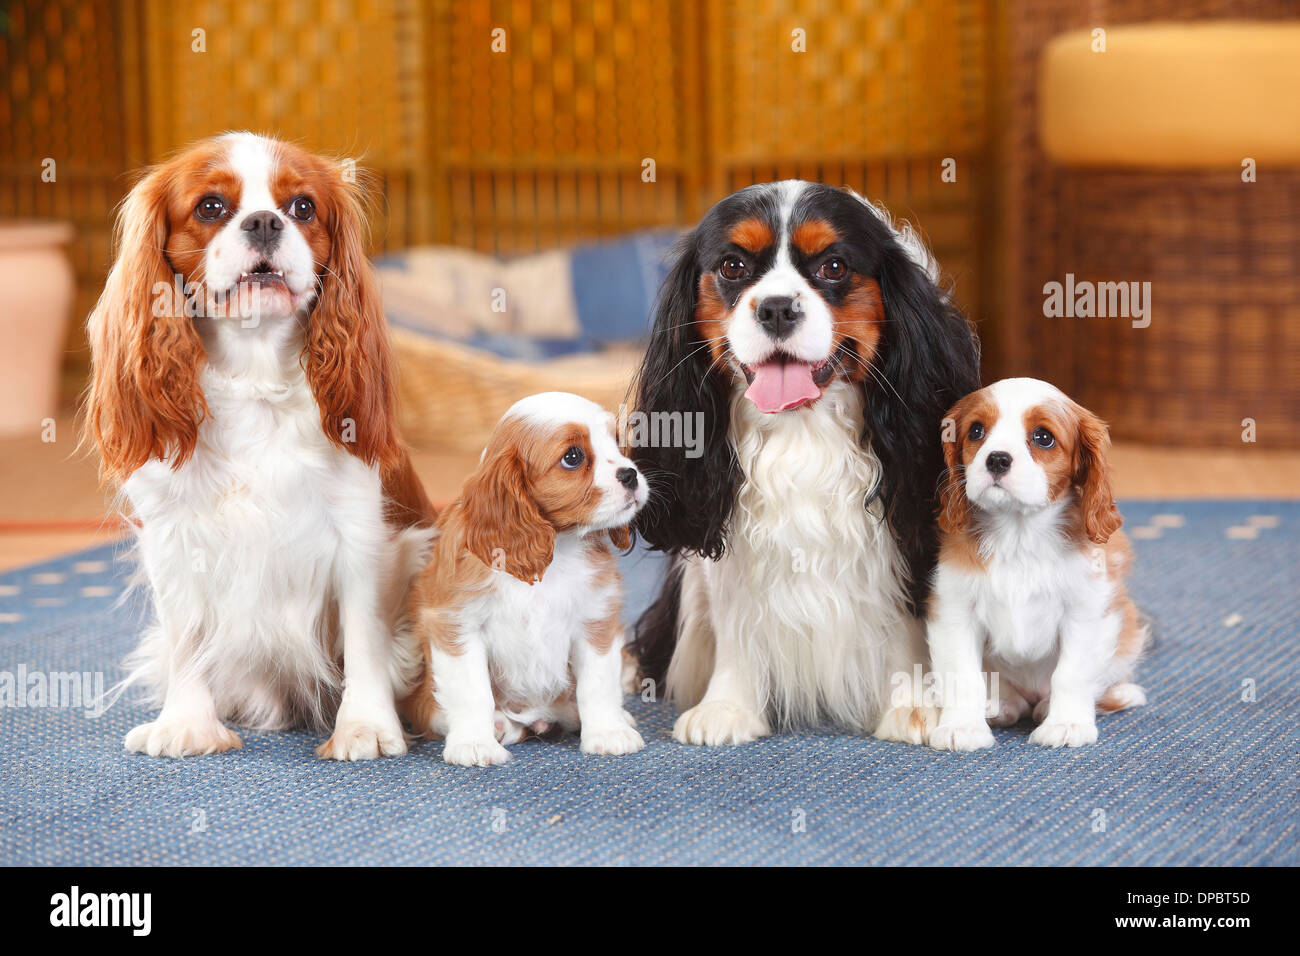 two cavalier king charles spaniel with two puppies sitting on a